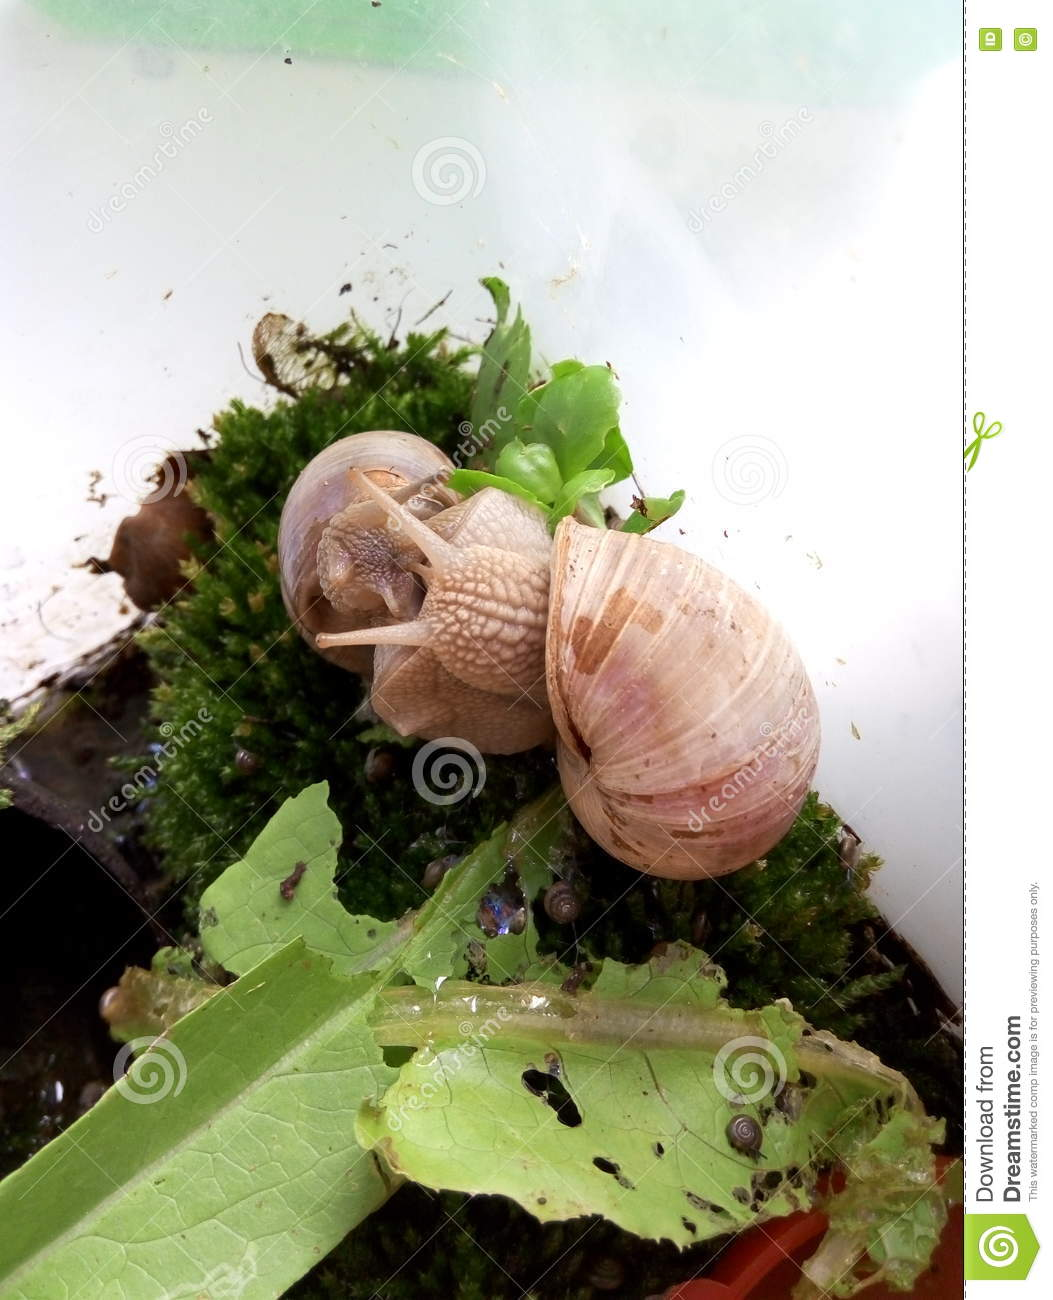 Snail Terrarium Stock Image Image Of Shell Insect Process 72642185